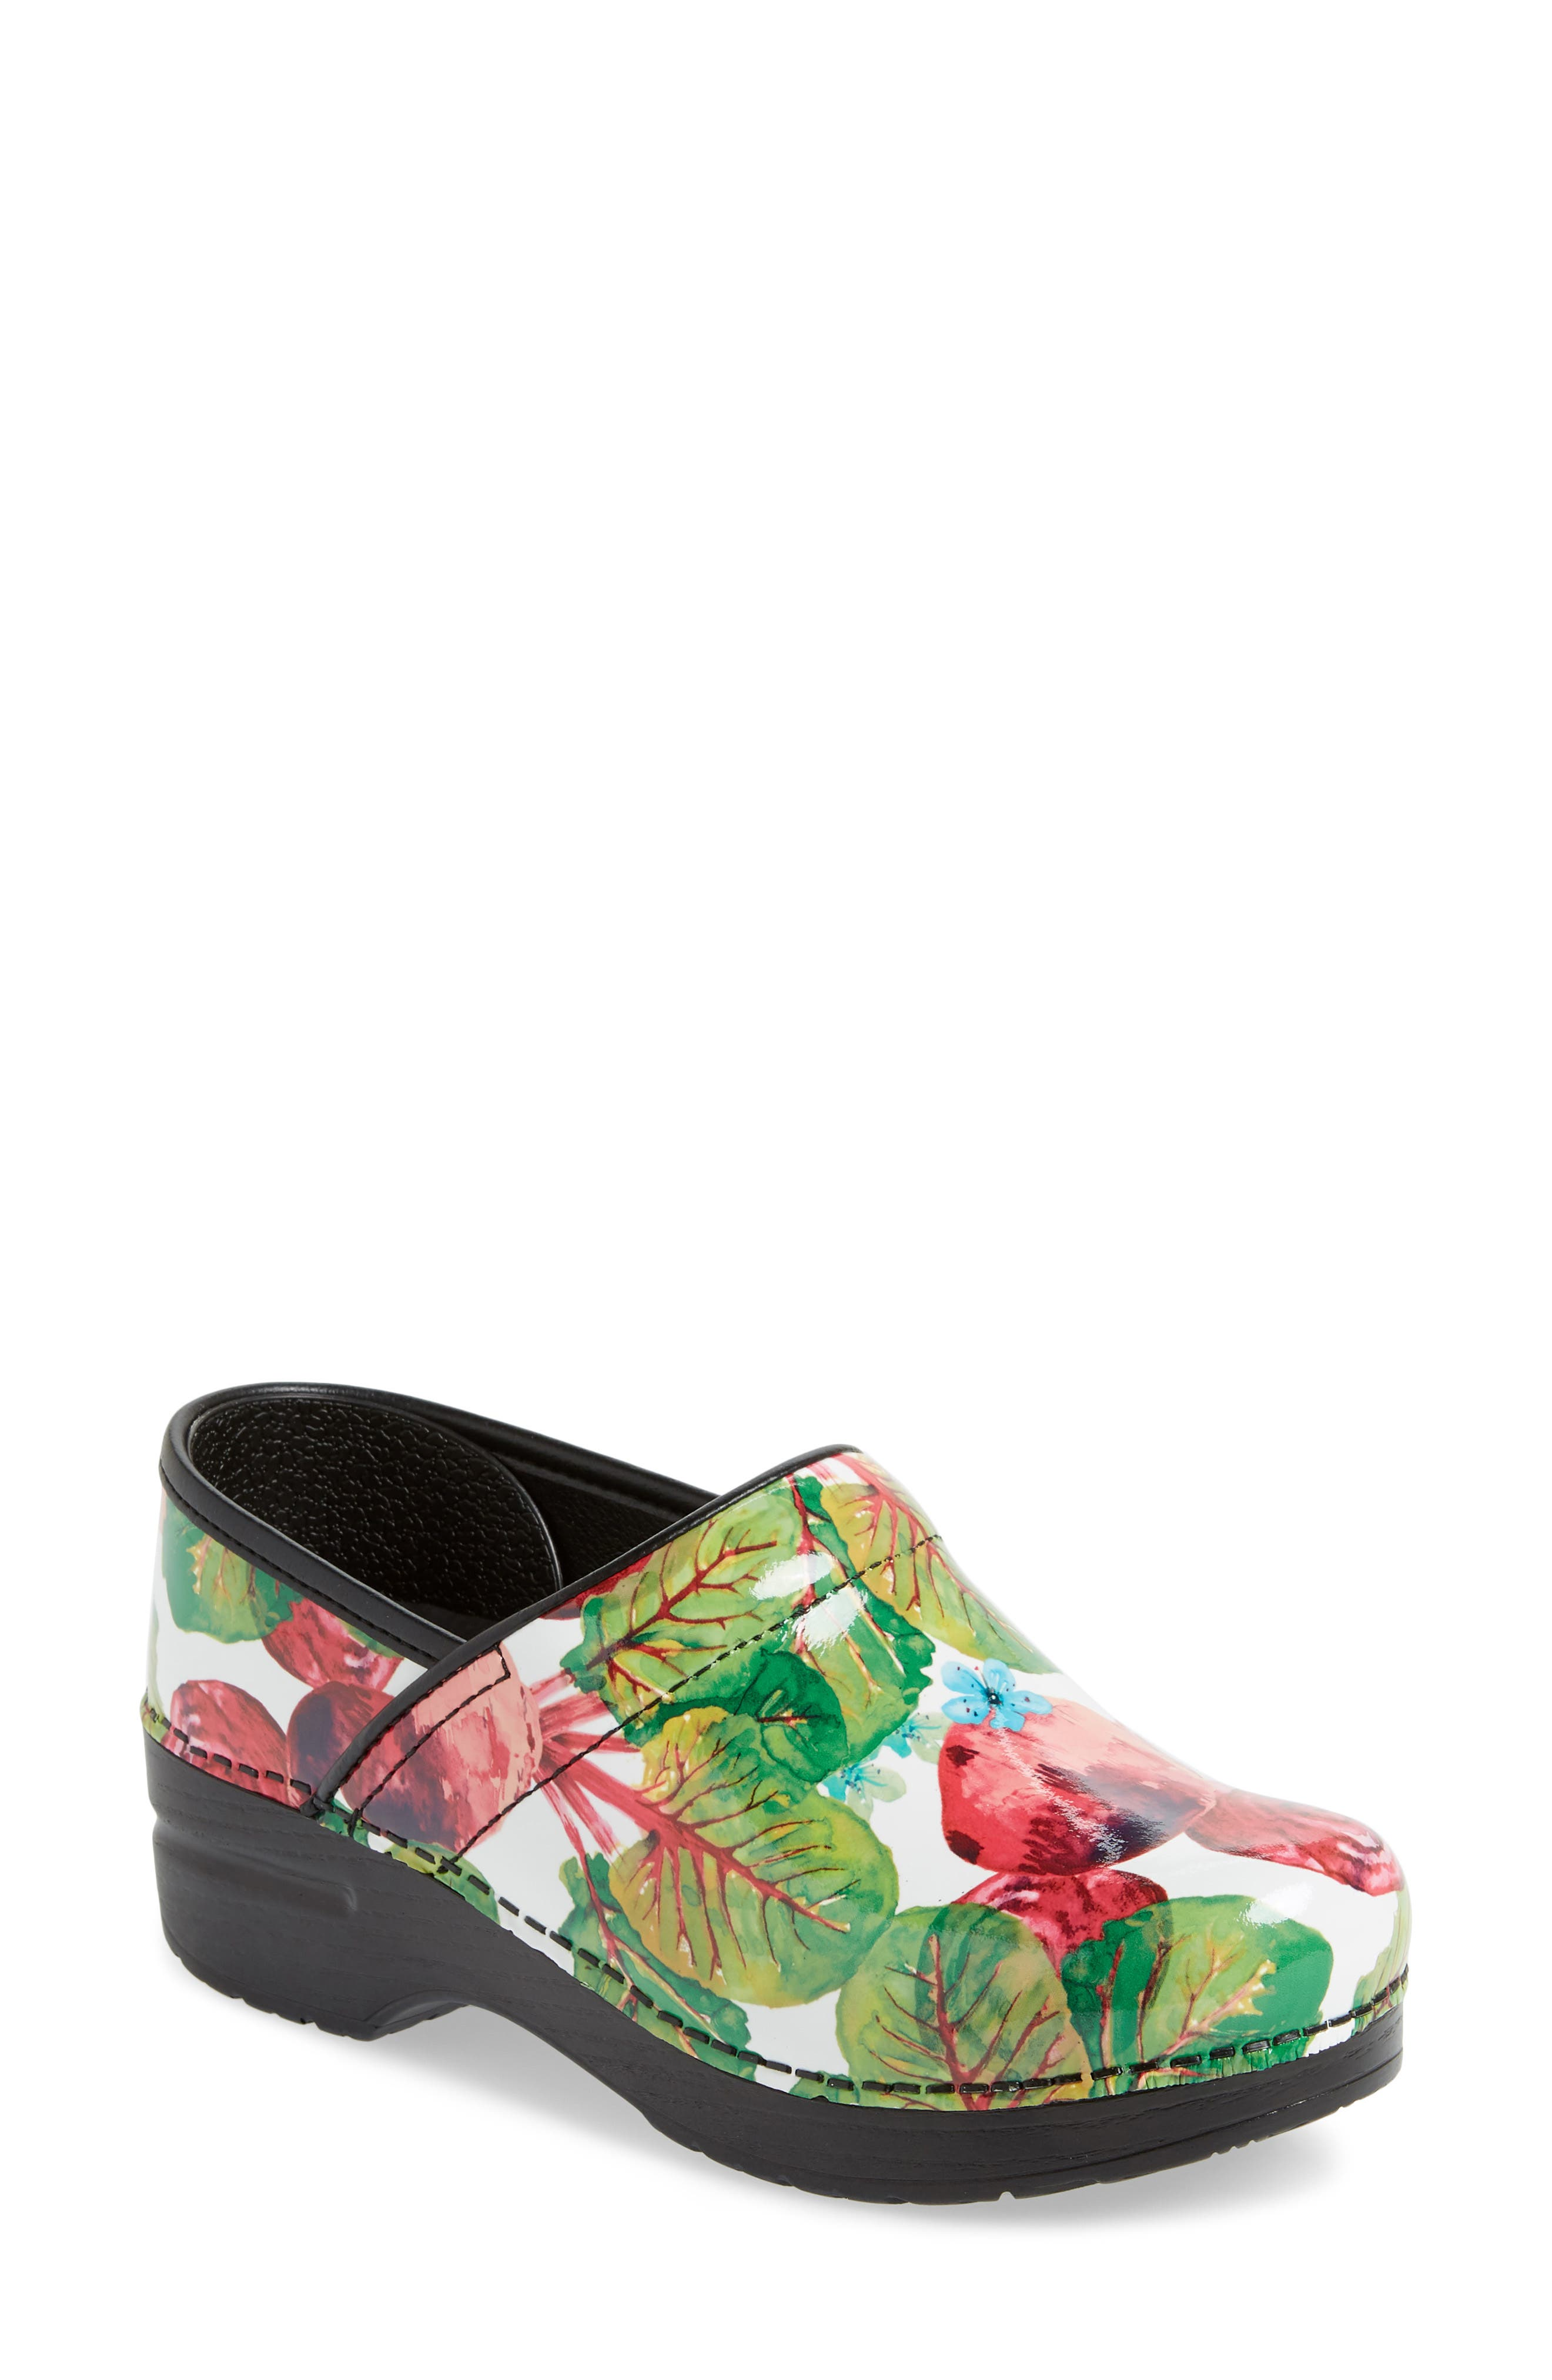 'Professional' Clog,                             Main thumbnail 1, color,                             BEETS PATENT LEATHER